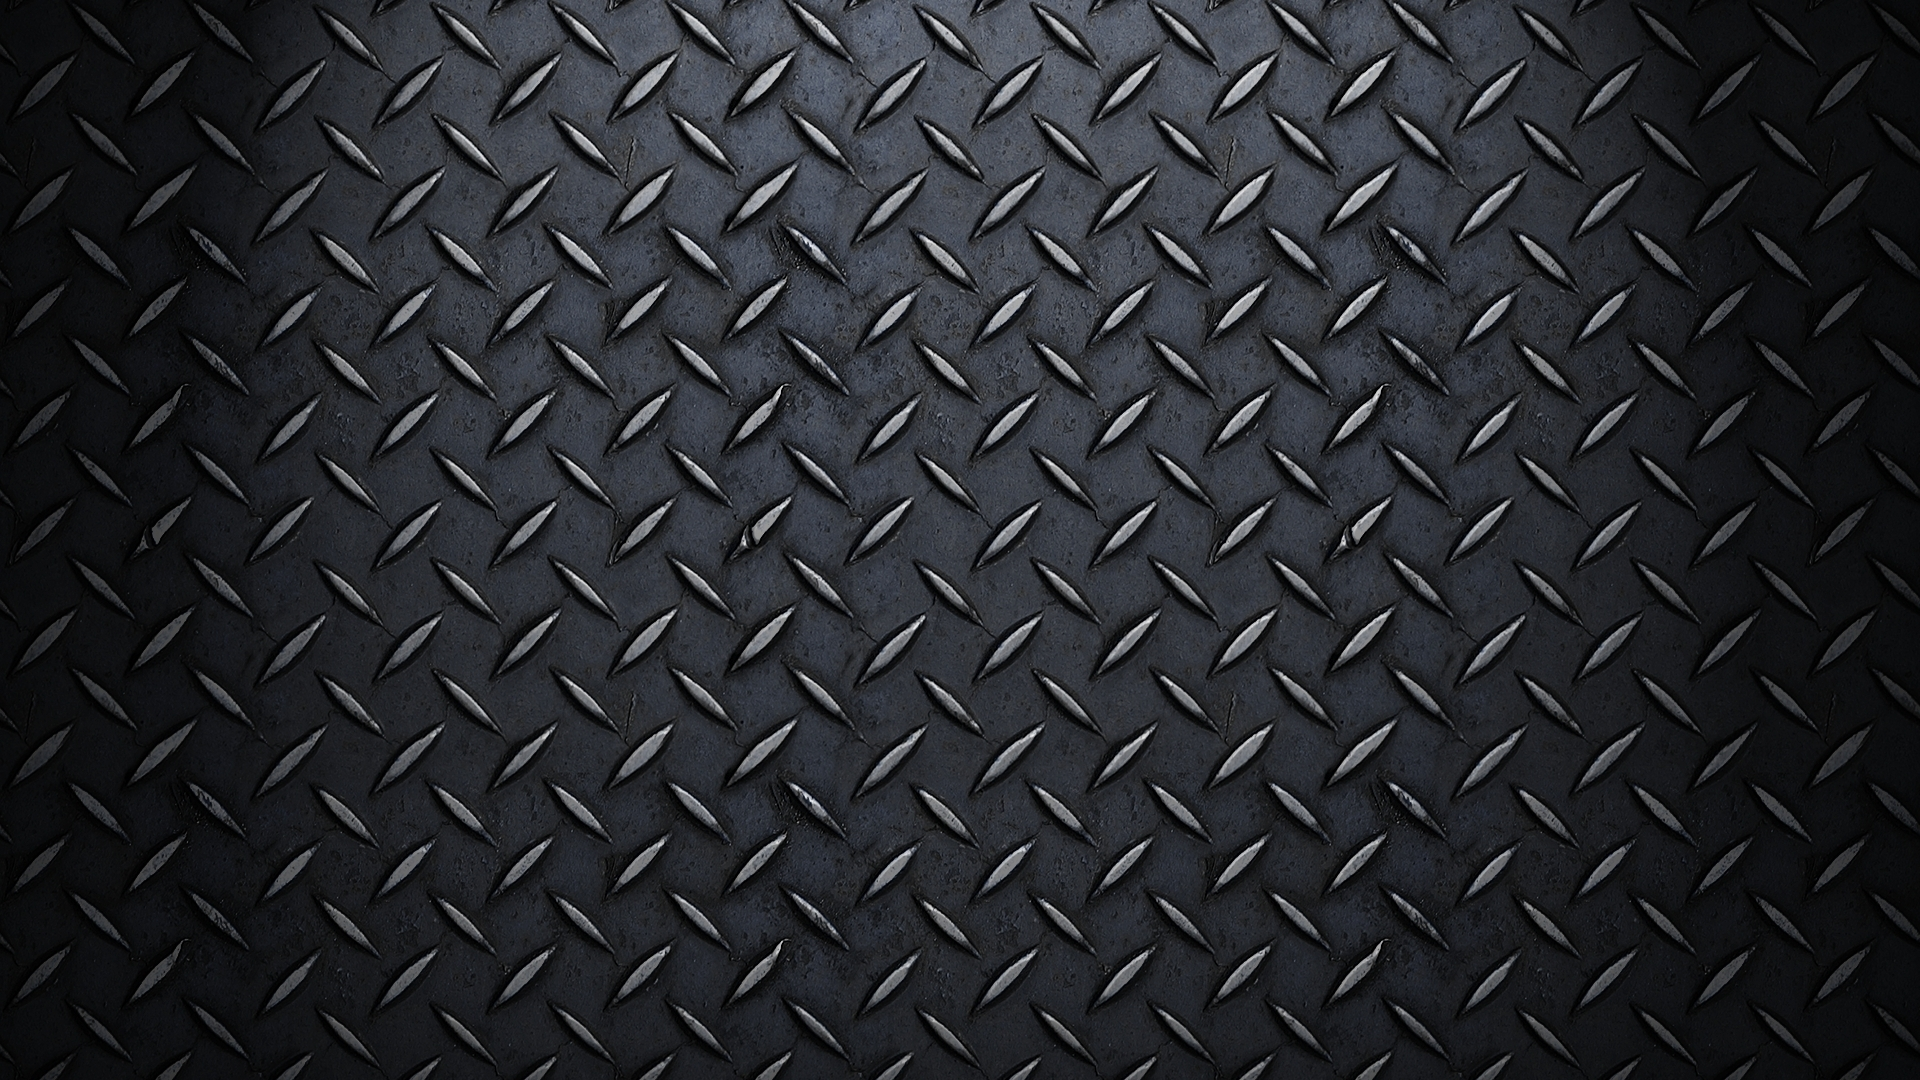 Free 3d Wallpaper For Computer Desktop Black Diamond Plate Close Up 3d